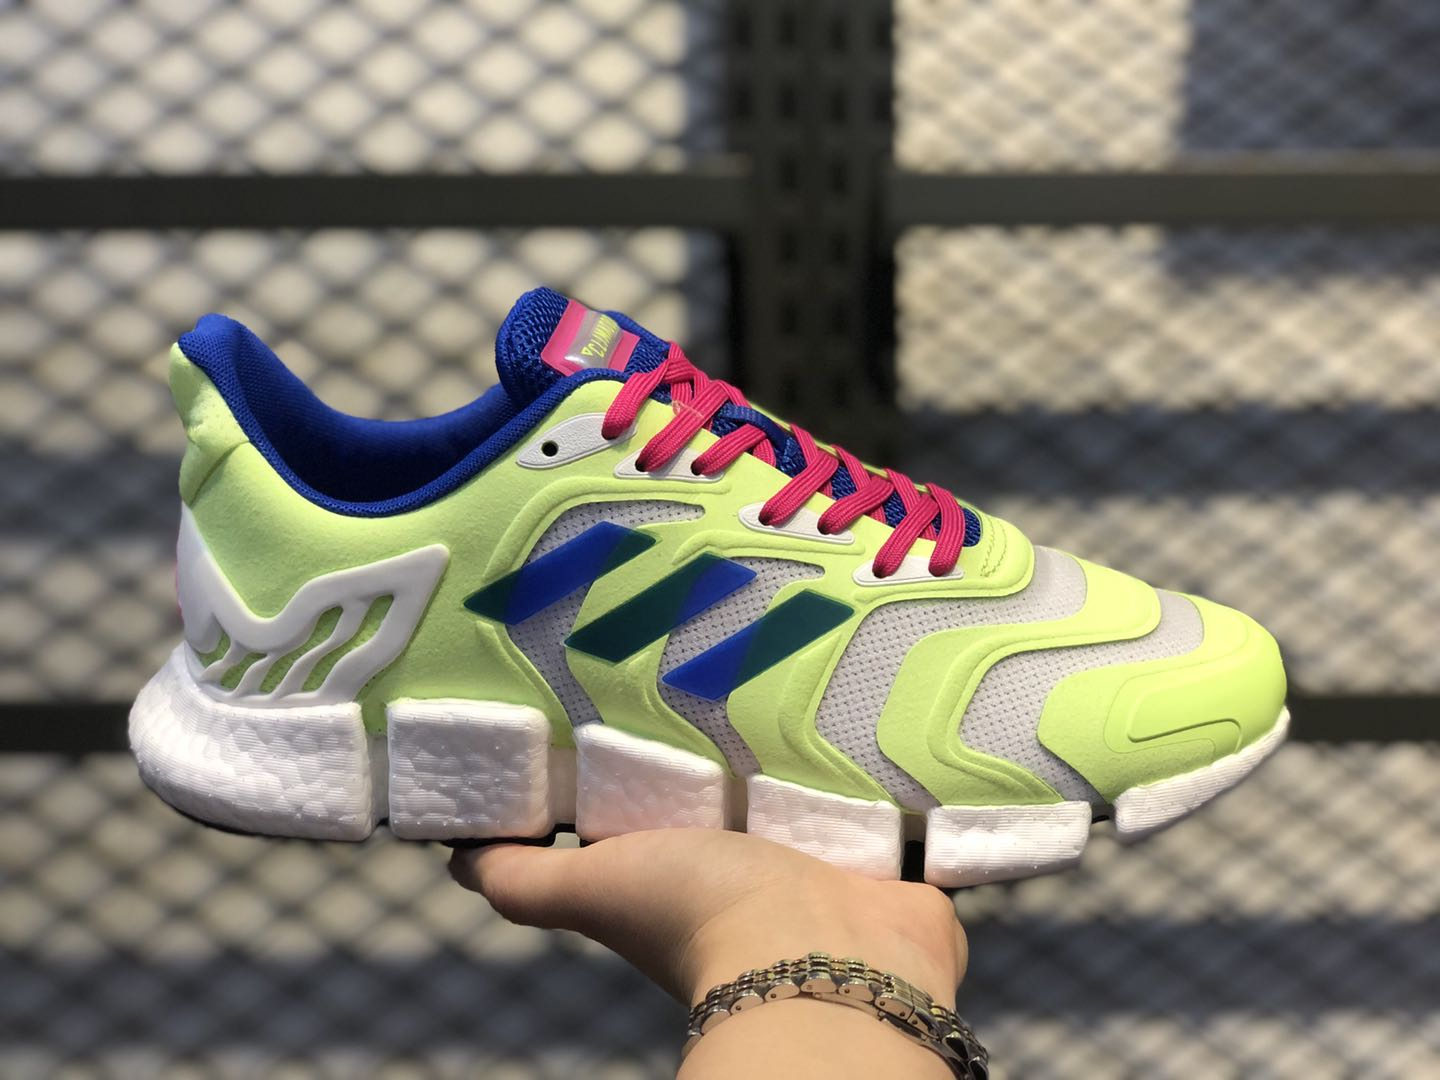 Discount Adidas Climacool Boost Neon Green/Sapphire-Pink FX7848